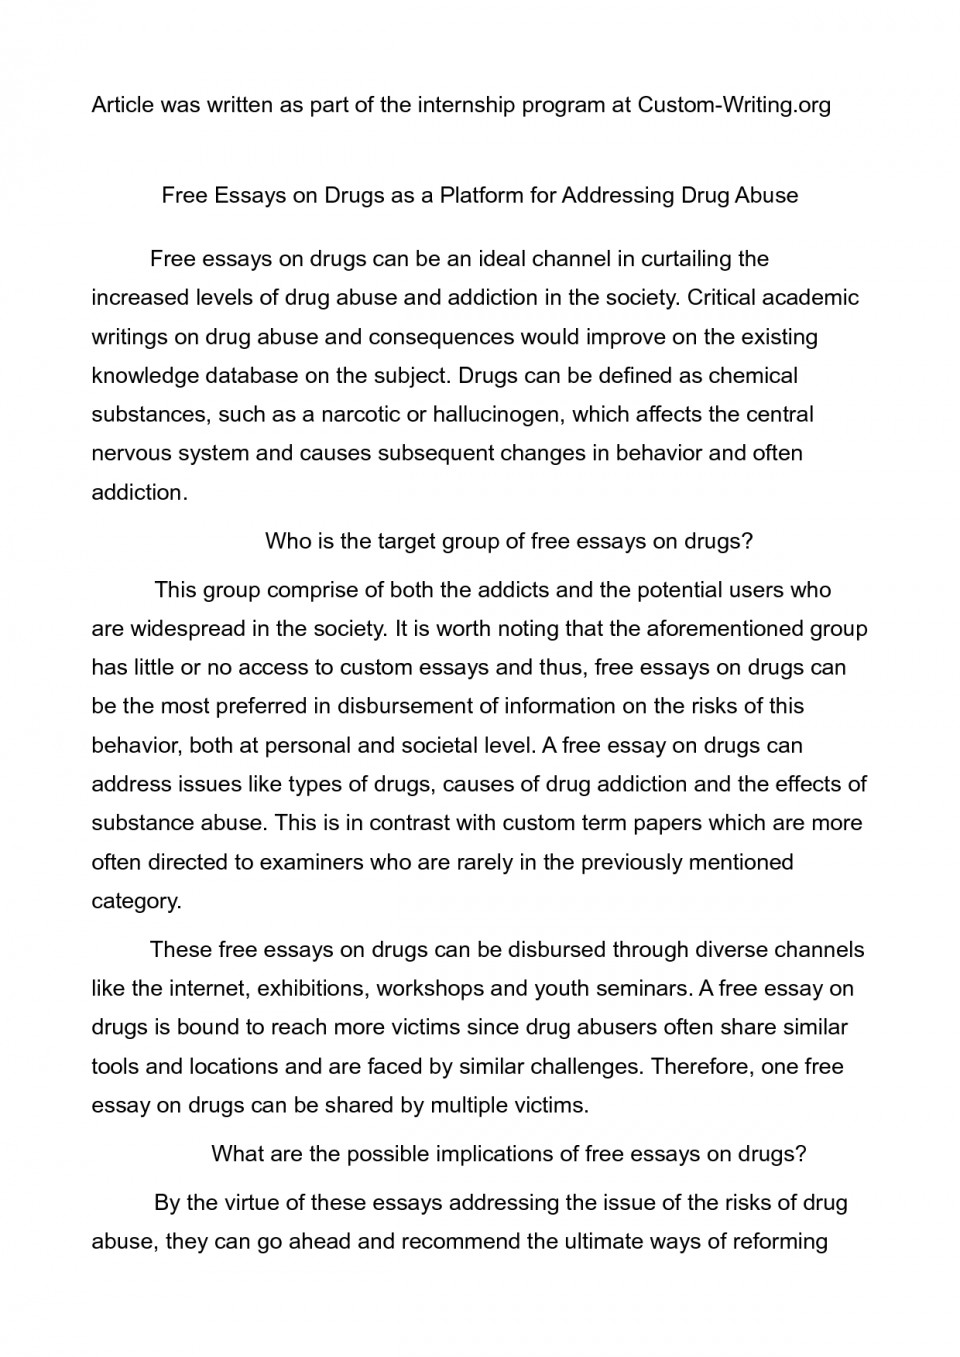 009 Argumentative Essay About Drugs Amazing Outline 6th Grade Persuasive/argumentative Definition Topics Sports 960